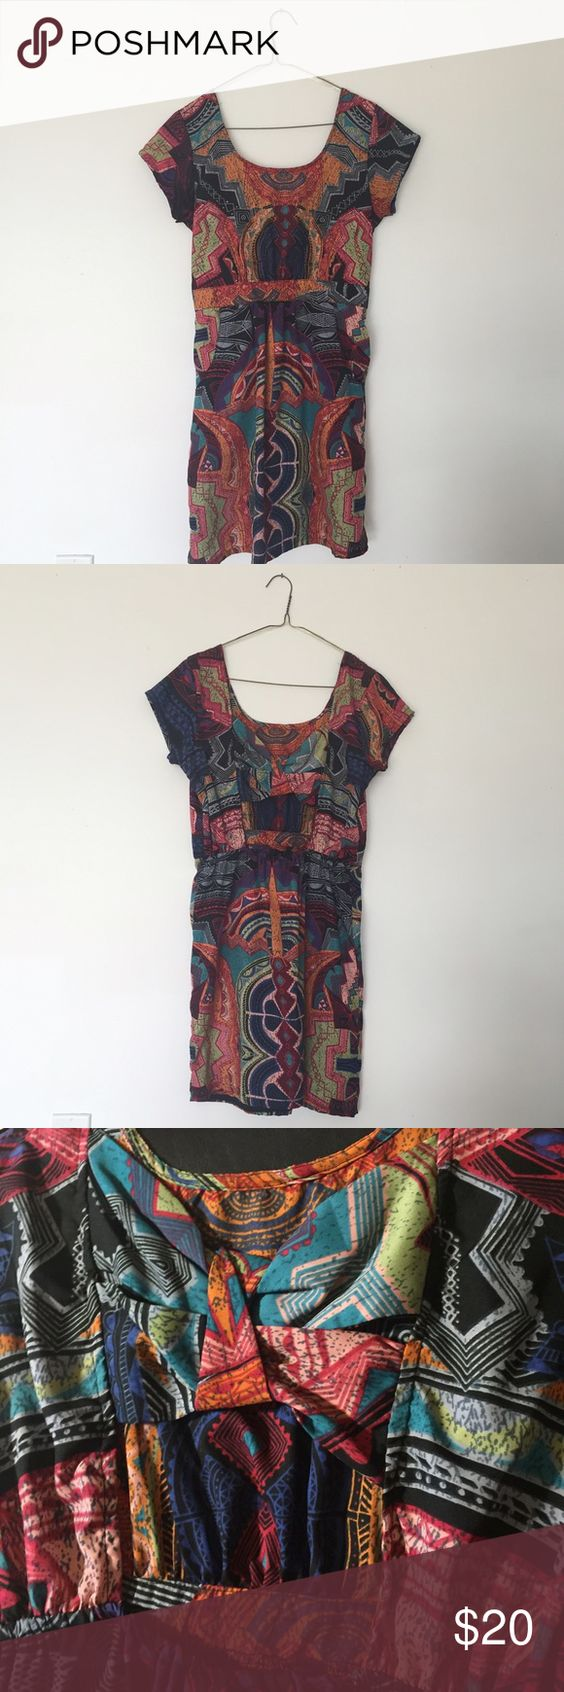 Multicolored Angie Dress from Macy's This is a multicolored Angie dress from Macy's. It has pockets, and an open cross-back design. Size small. 100% polyester. Only worn once, in like-new condition!! Macy's Dresses Mini